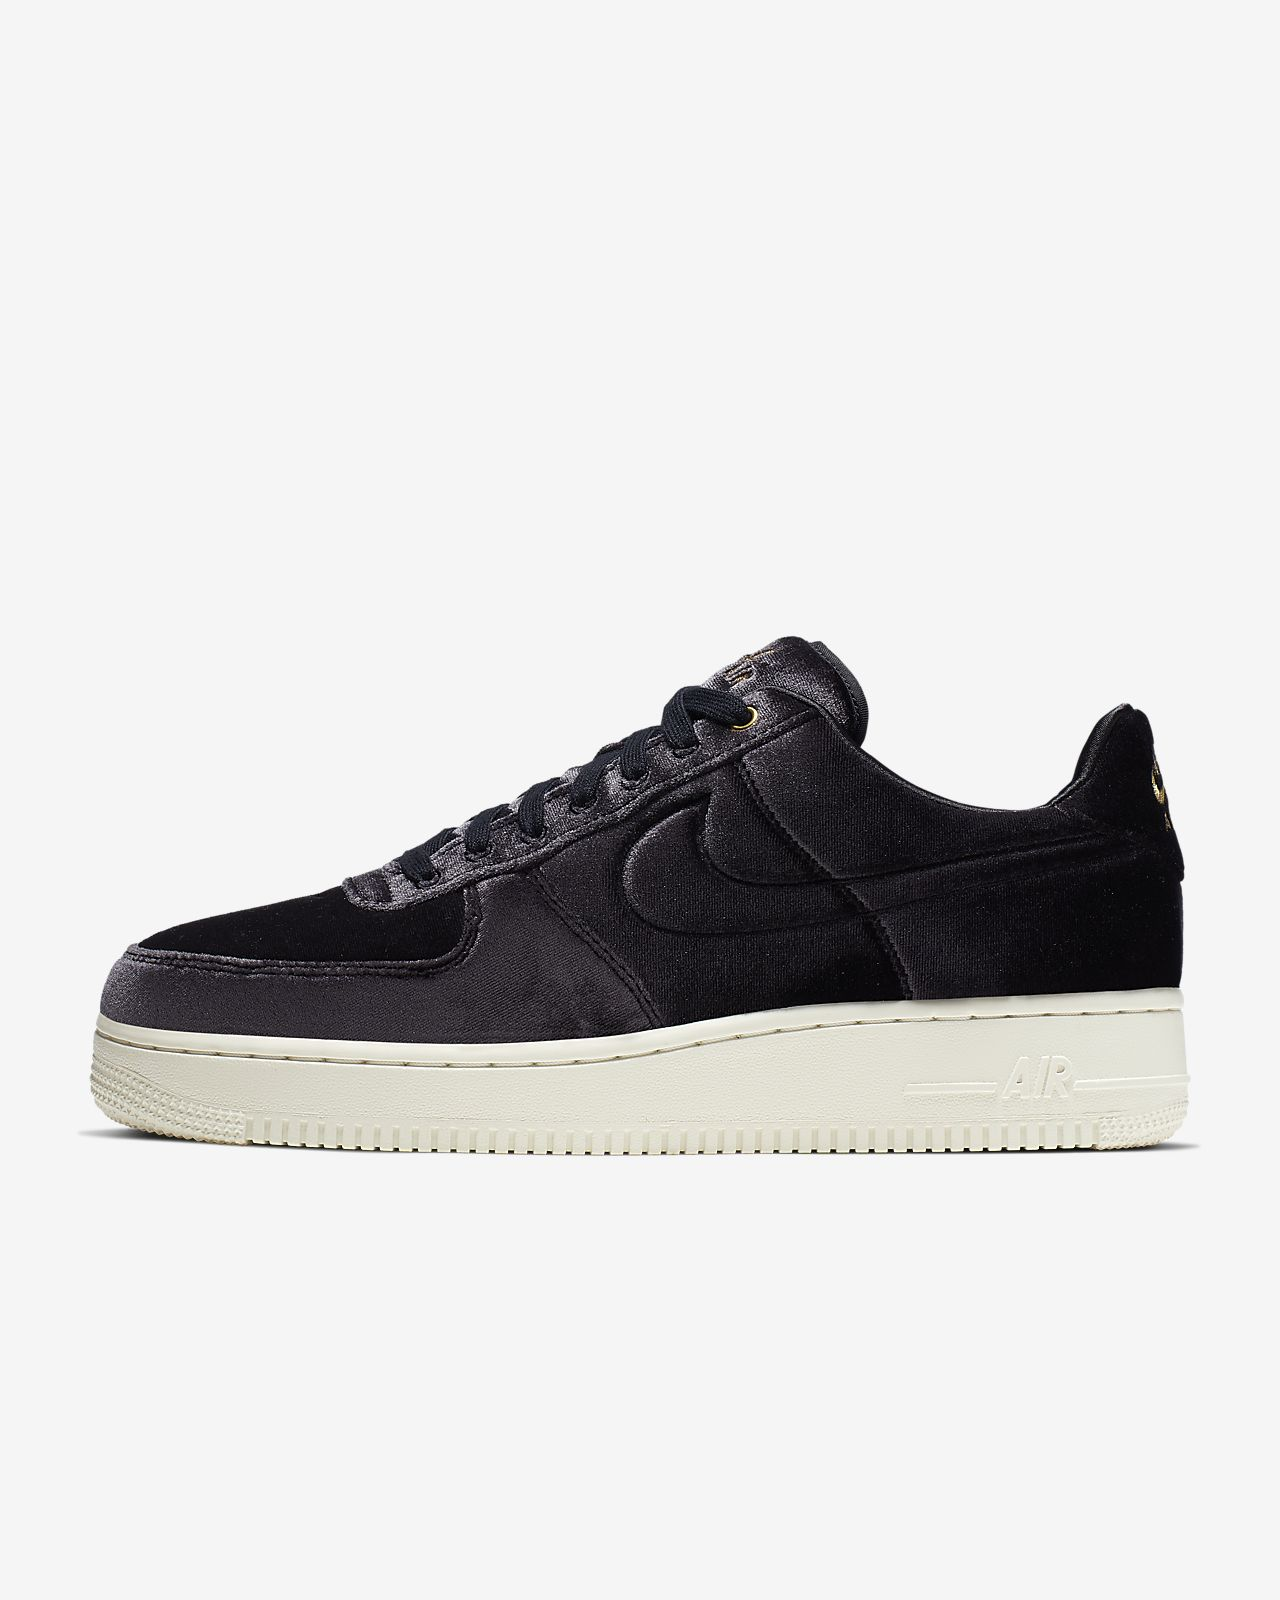 outlet store e61bc 4e4c5 ... Buty męskie Nike Air Force 1 07 Premium 3